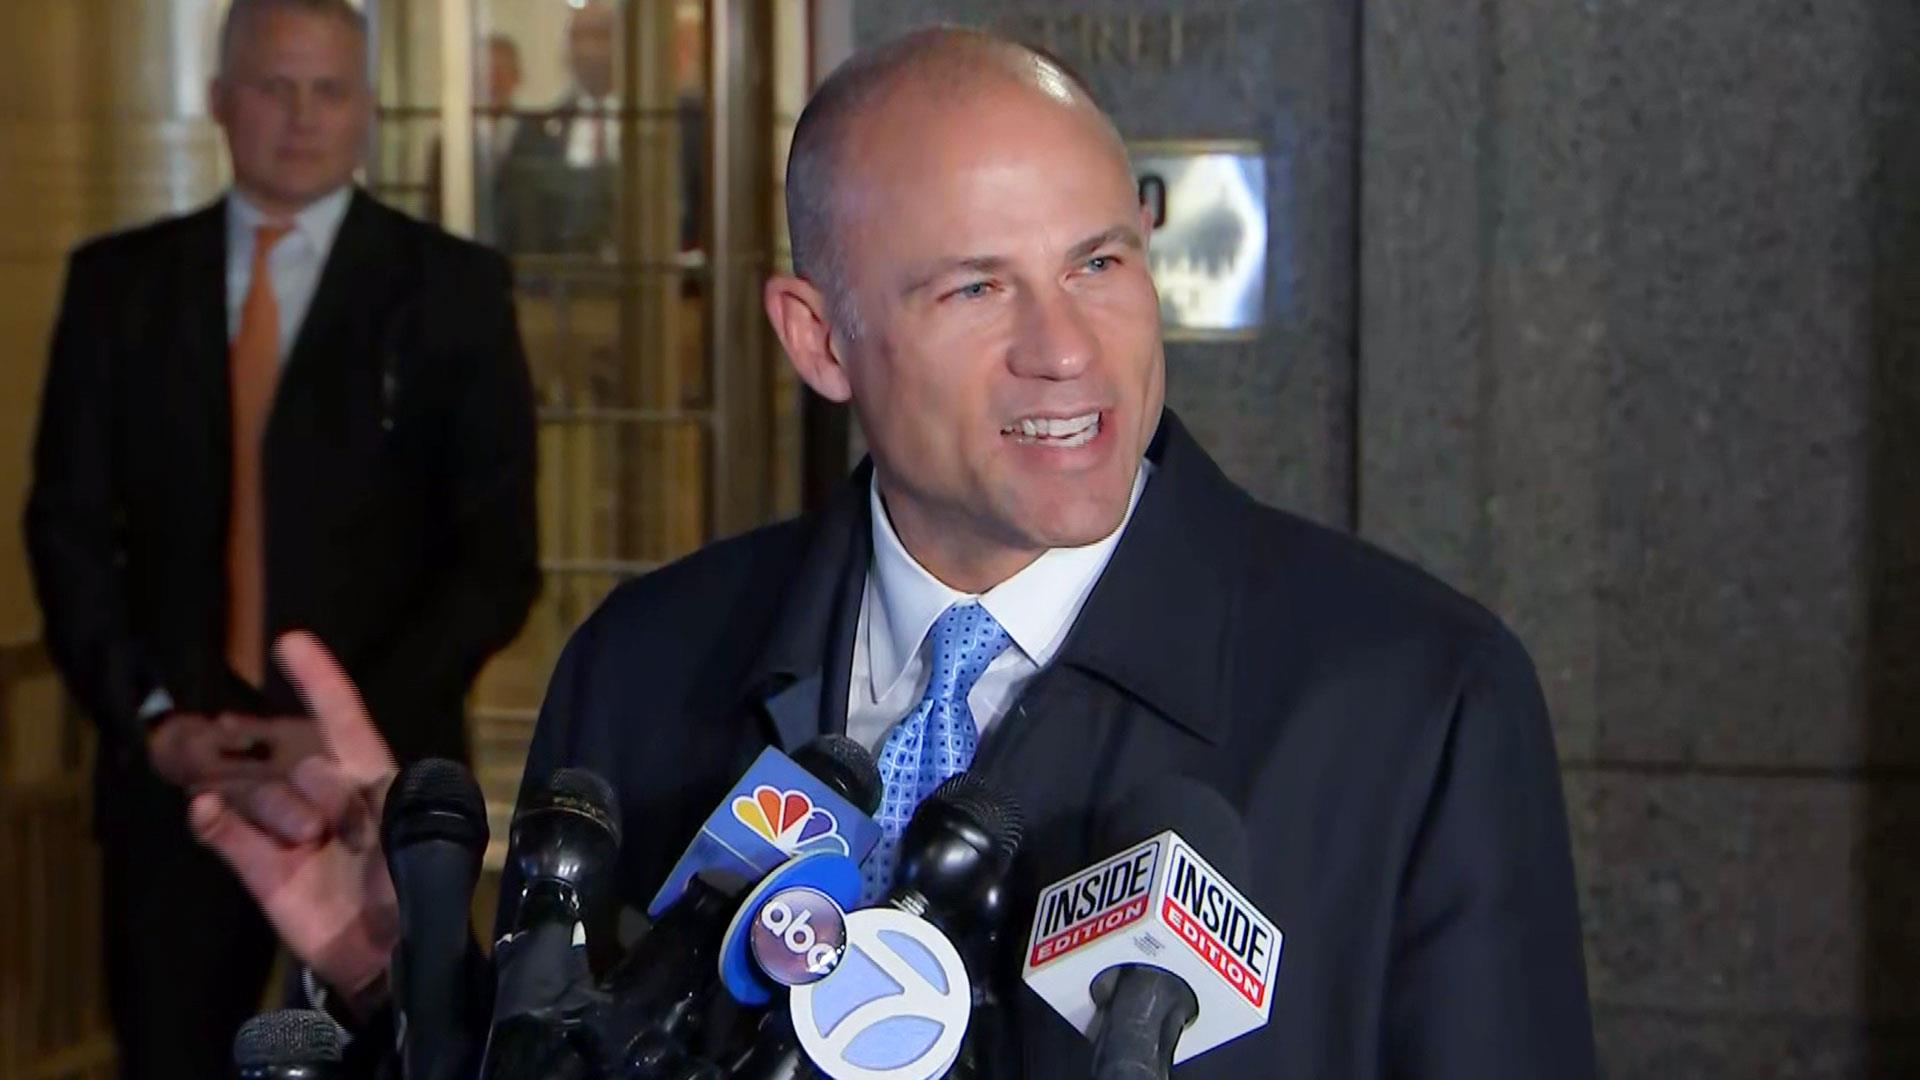 bf6d0d80bcf2 Michael Avenatti charged with trying to extort up to $25 million from Nike